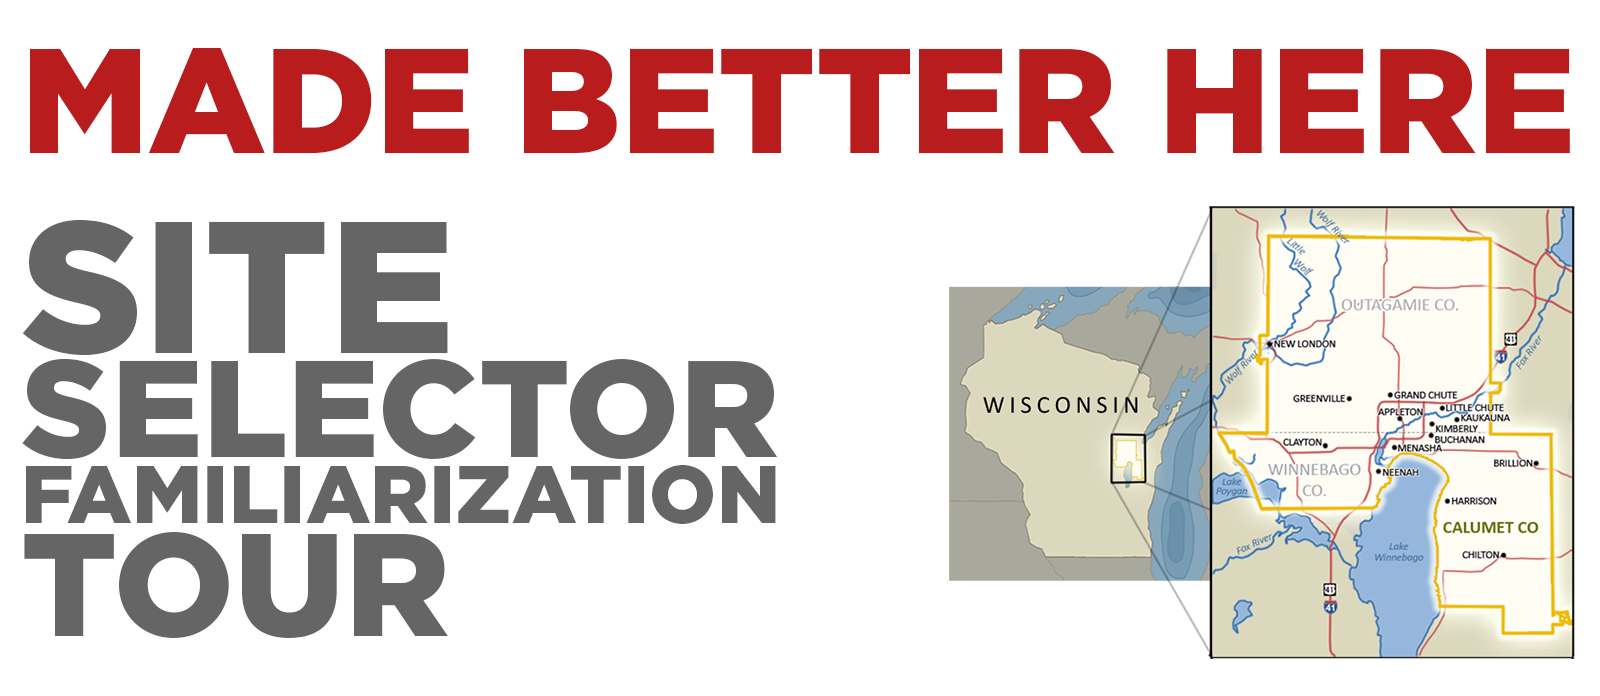 PRESS RELEASE: KEY CONSULTANTS TO BE HOSTED IN FOX CITIES AS A PART OF JOB CREATION EFFORTS